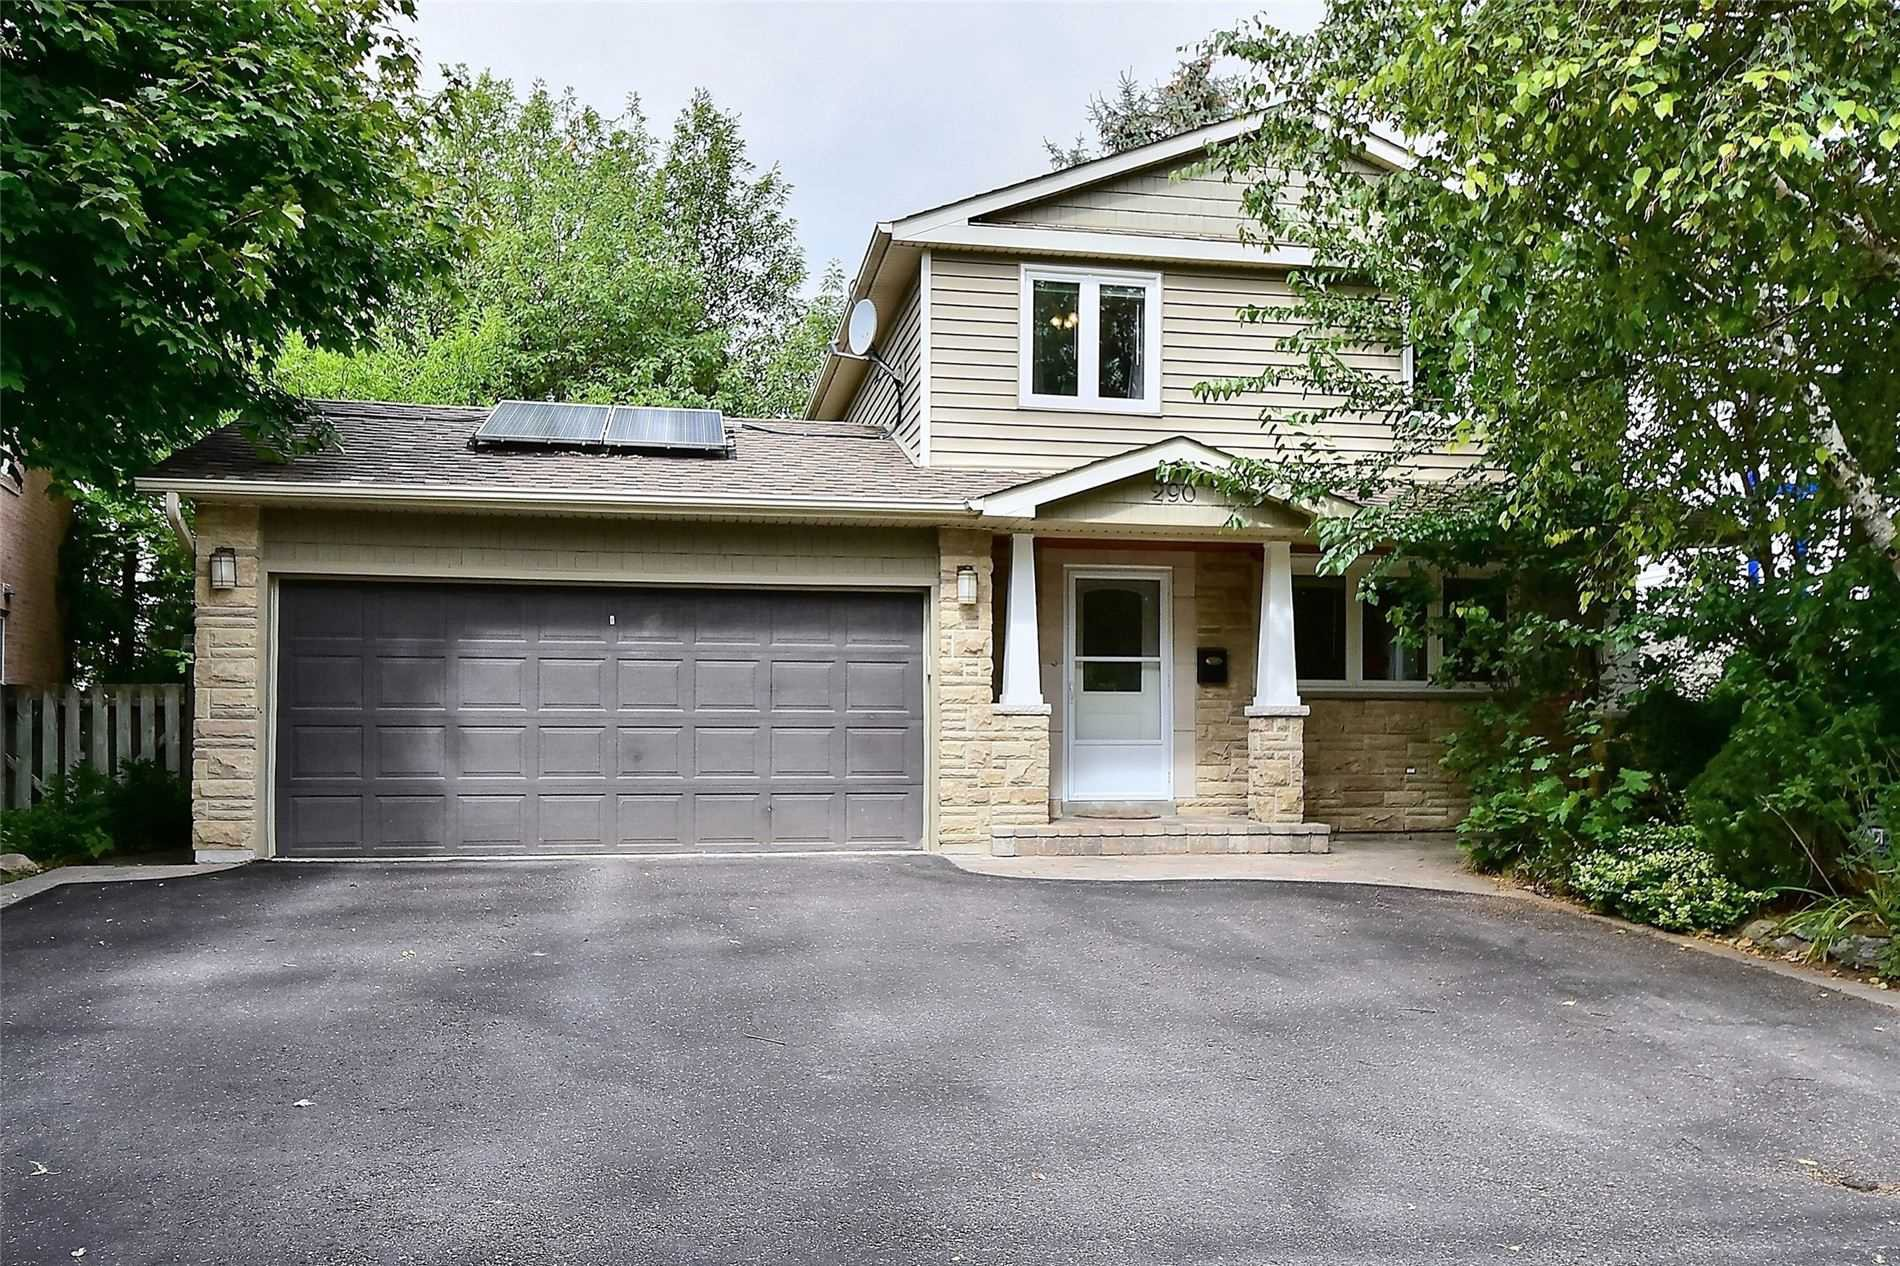 Main Photo: 290 Manchester Drive in Newmarket: Bristol-London House (2-Storey) for sale : MLS®# N4590588